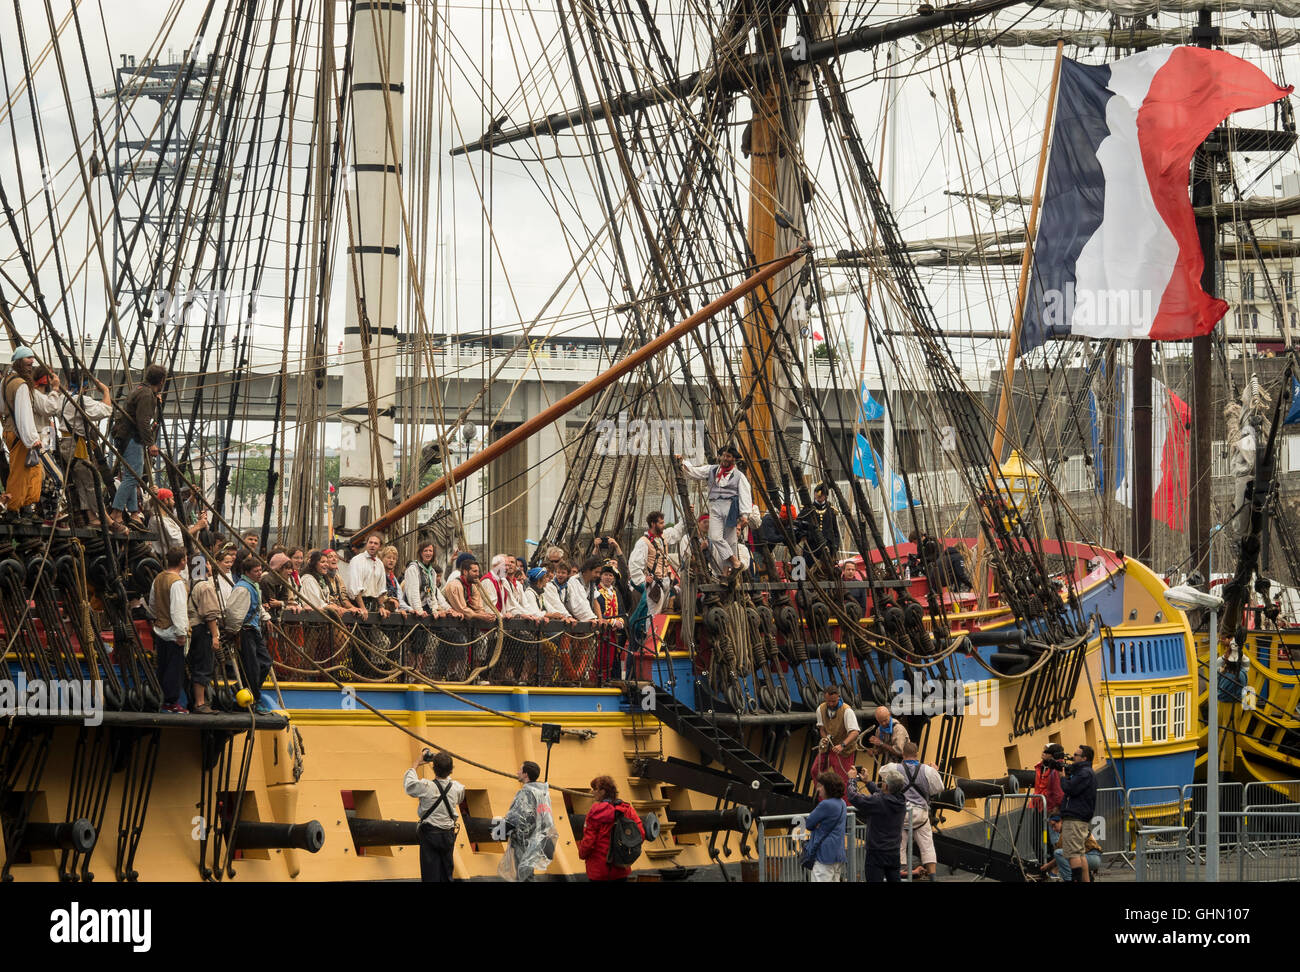 The crew of the Hermione sings sing sailor songs  during  the Brest's International Maritime Festival 2016. - Stock Image